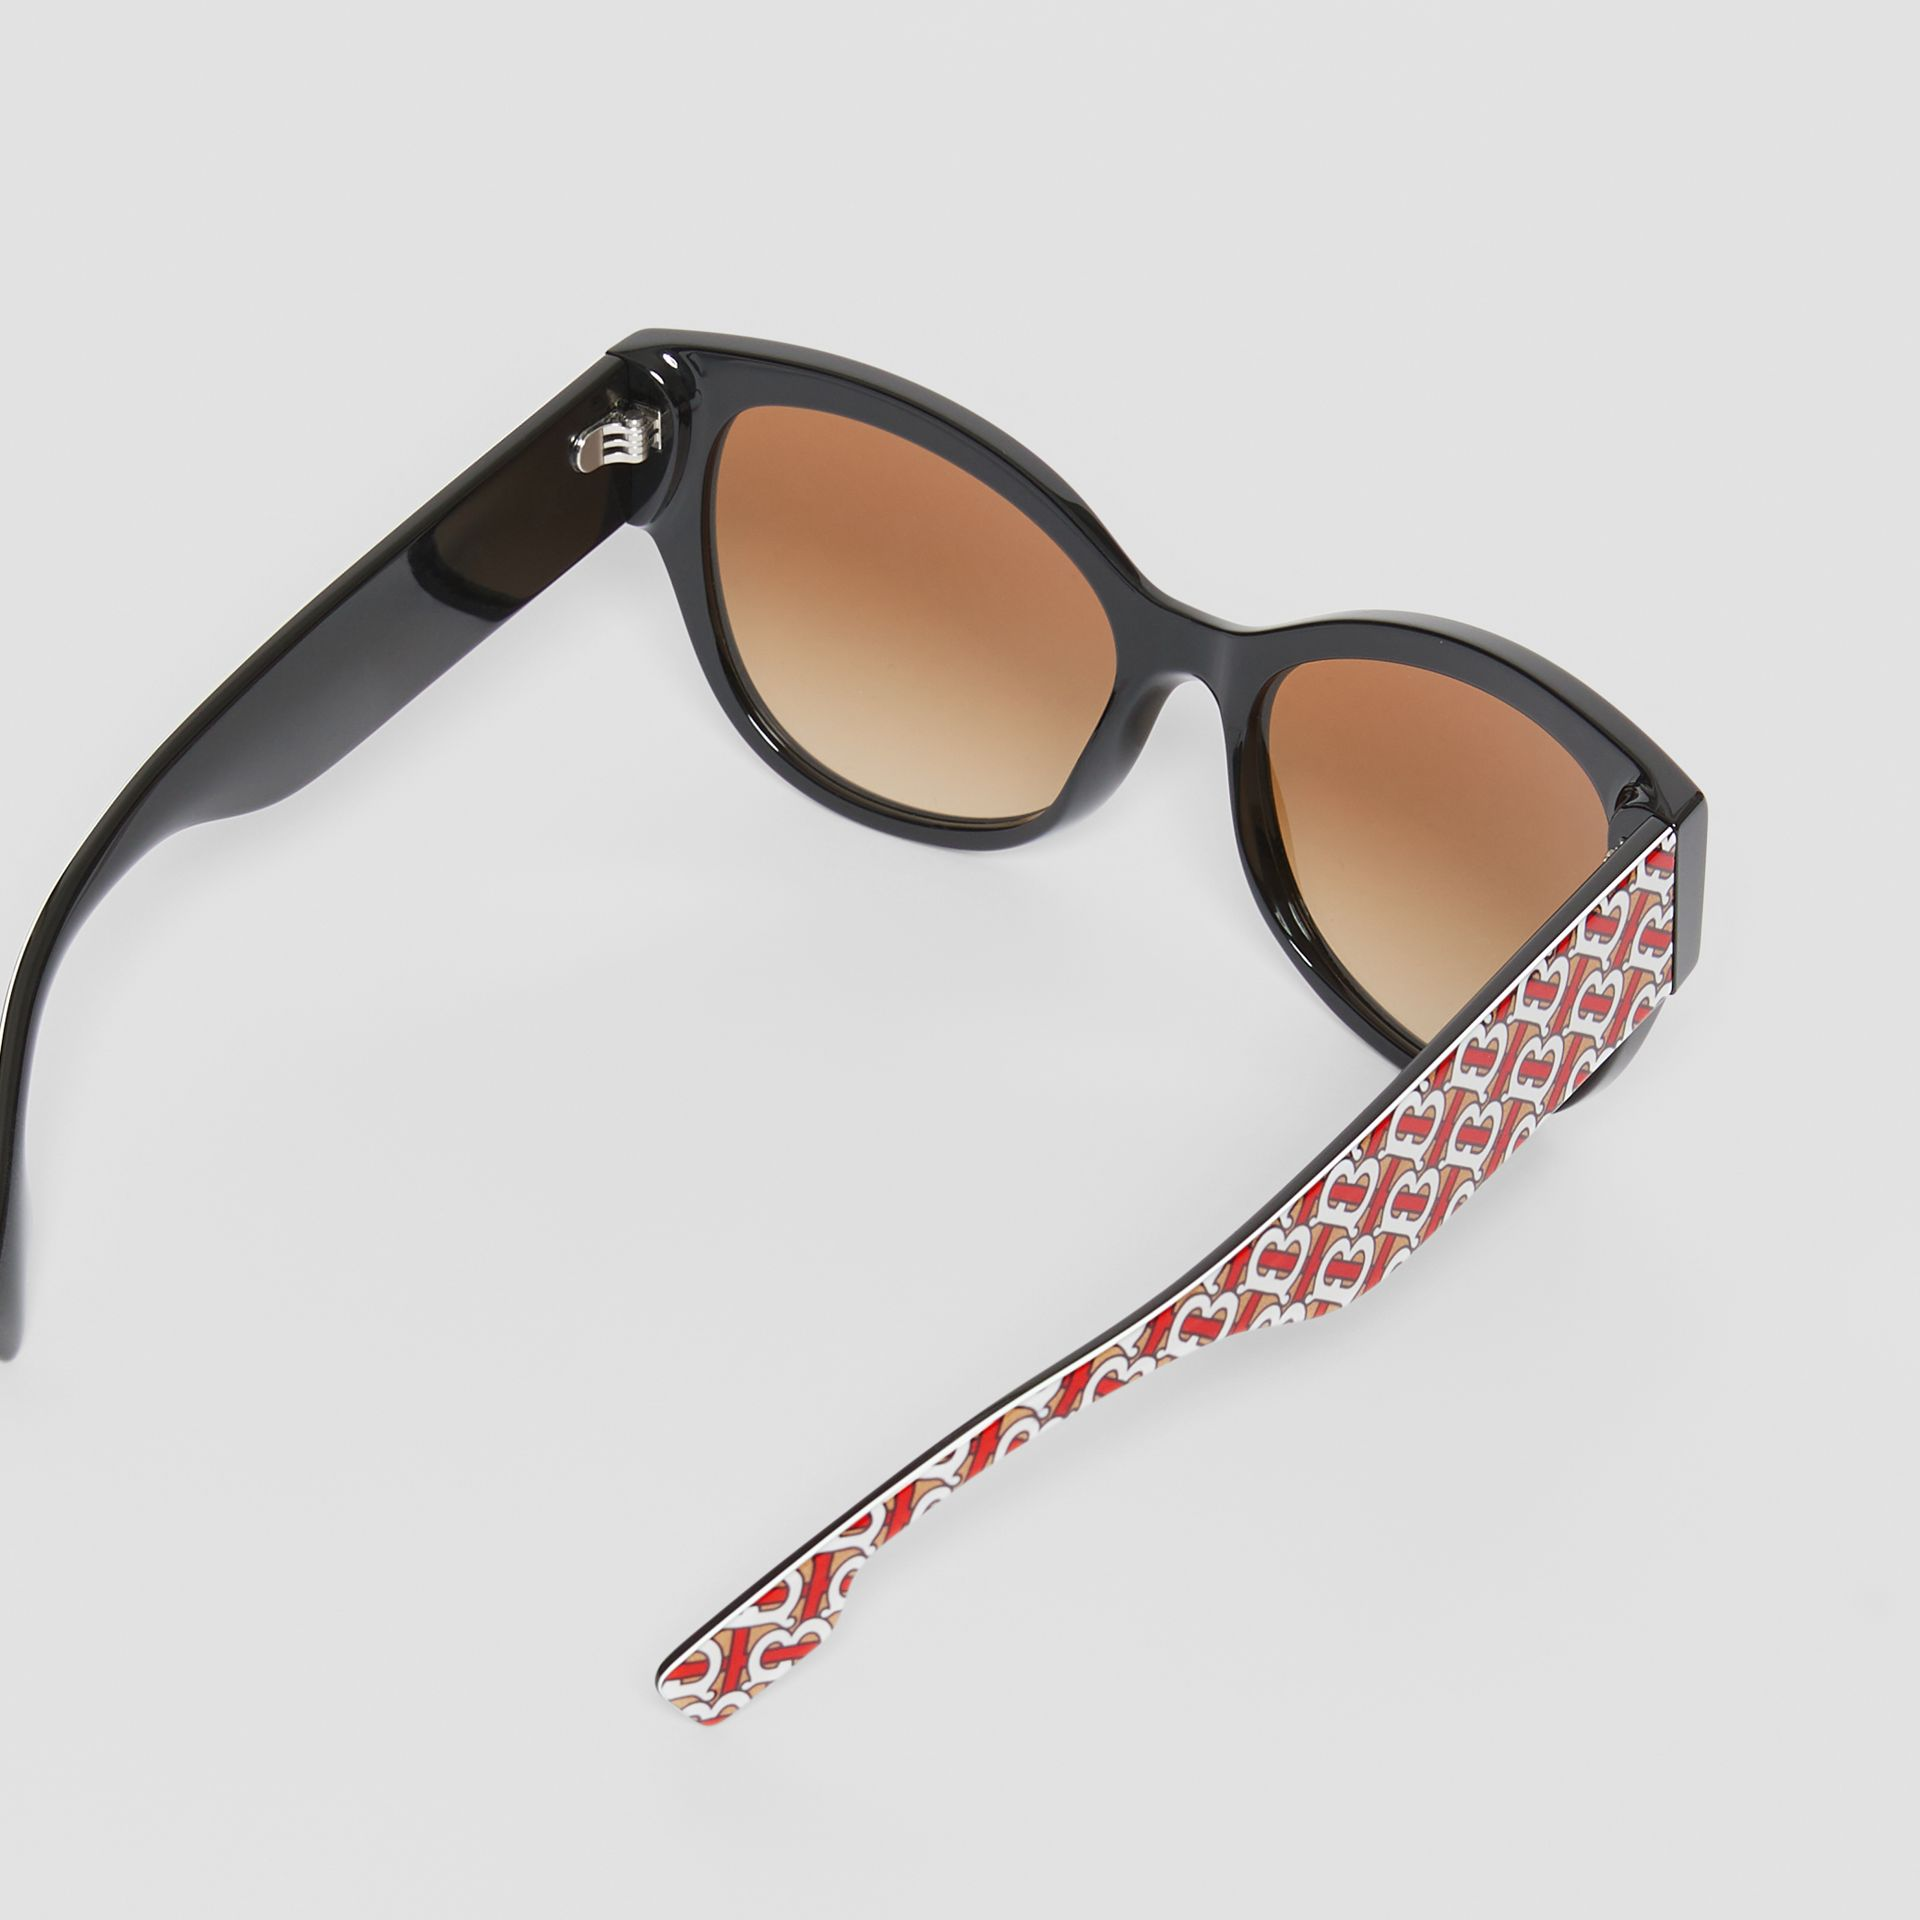 Monogram Detail Butterfly Frame Sunglasses in Black/vermillion - Women | Burberry - gallery image 3